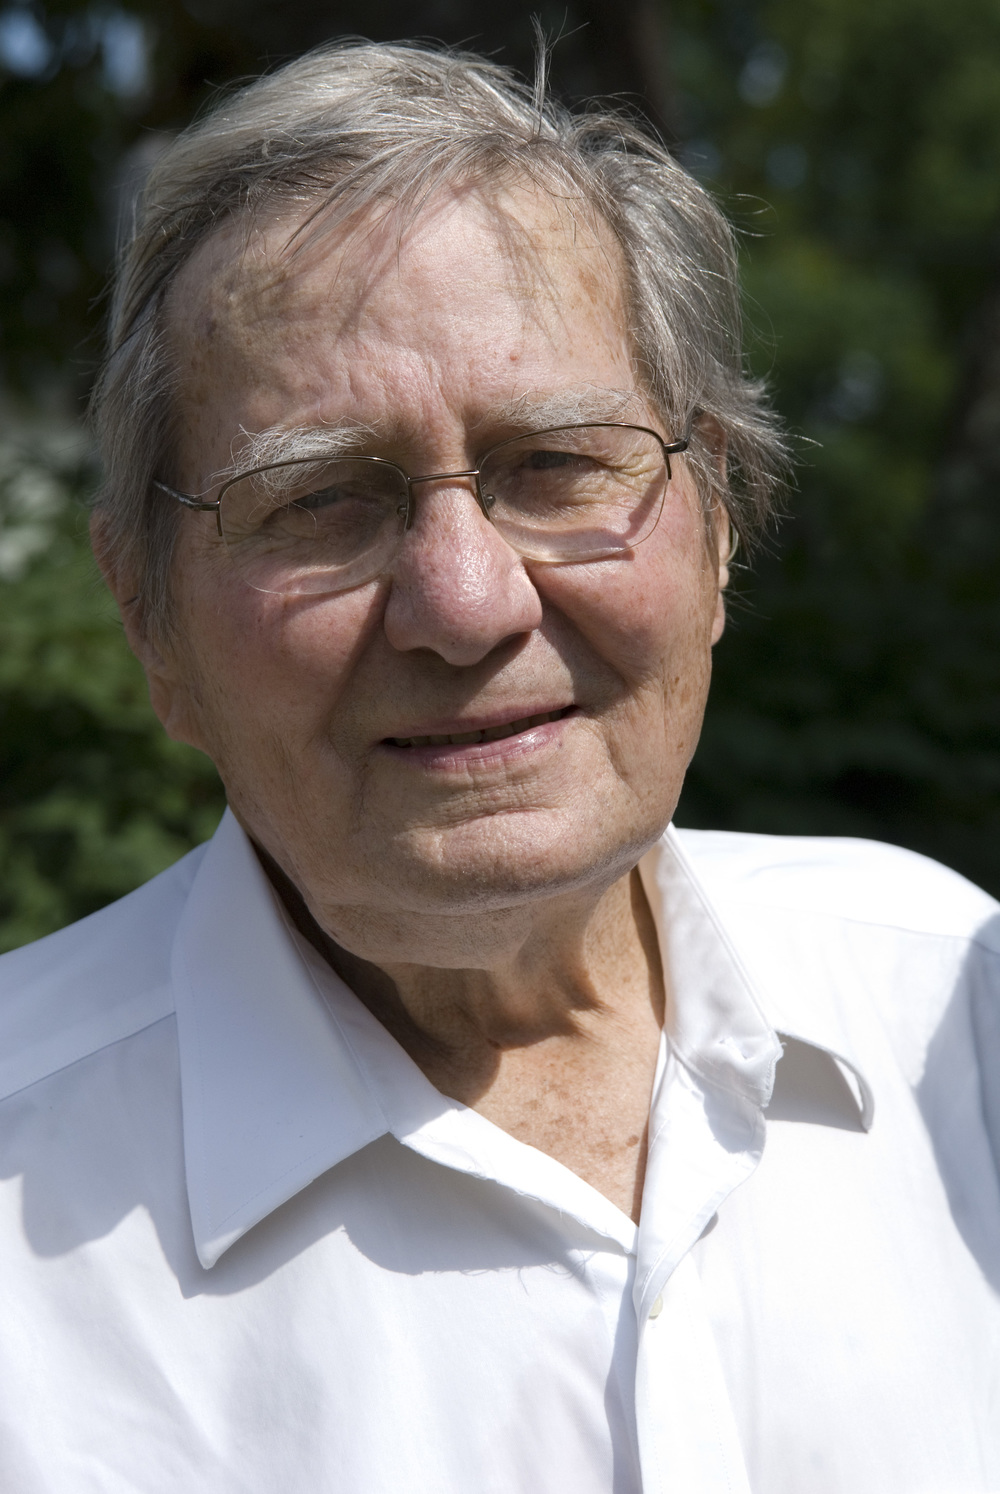 Galway Kinnell in Ashfield, summer 2013 (c) Chelynn Tetreault photography